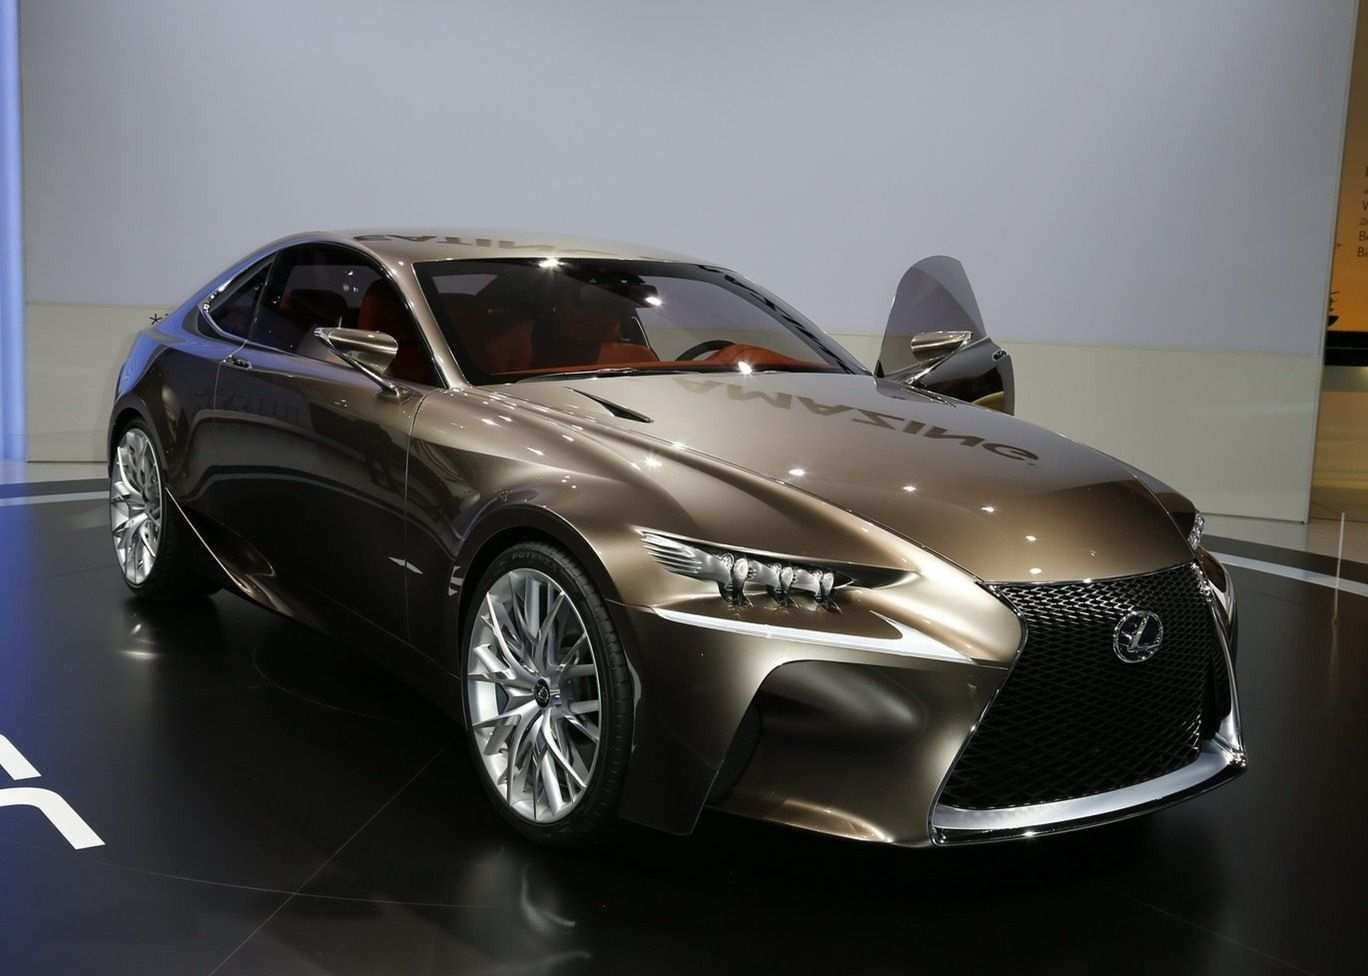 35 Concept of 2019 Lexus Concept Ratings for 2019 Lexus Concept